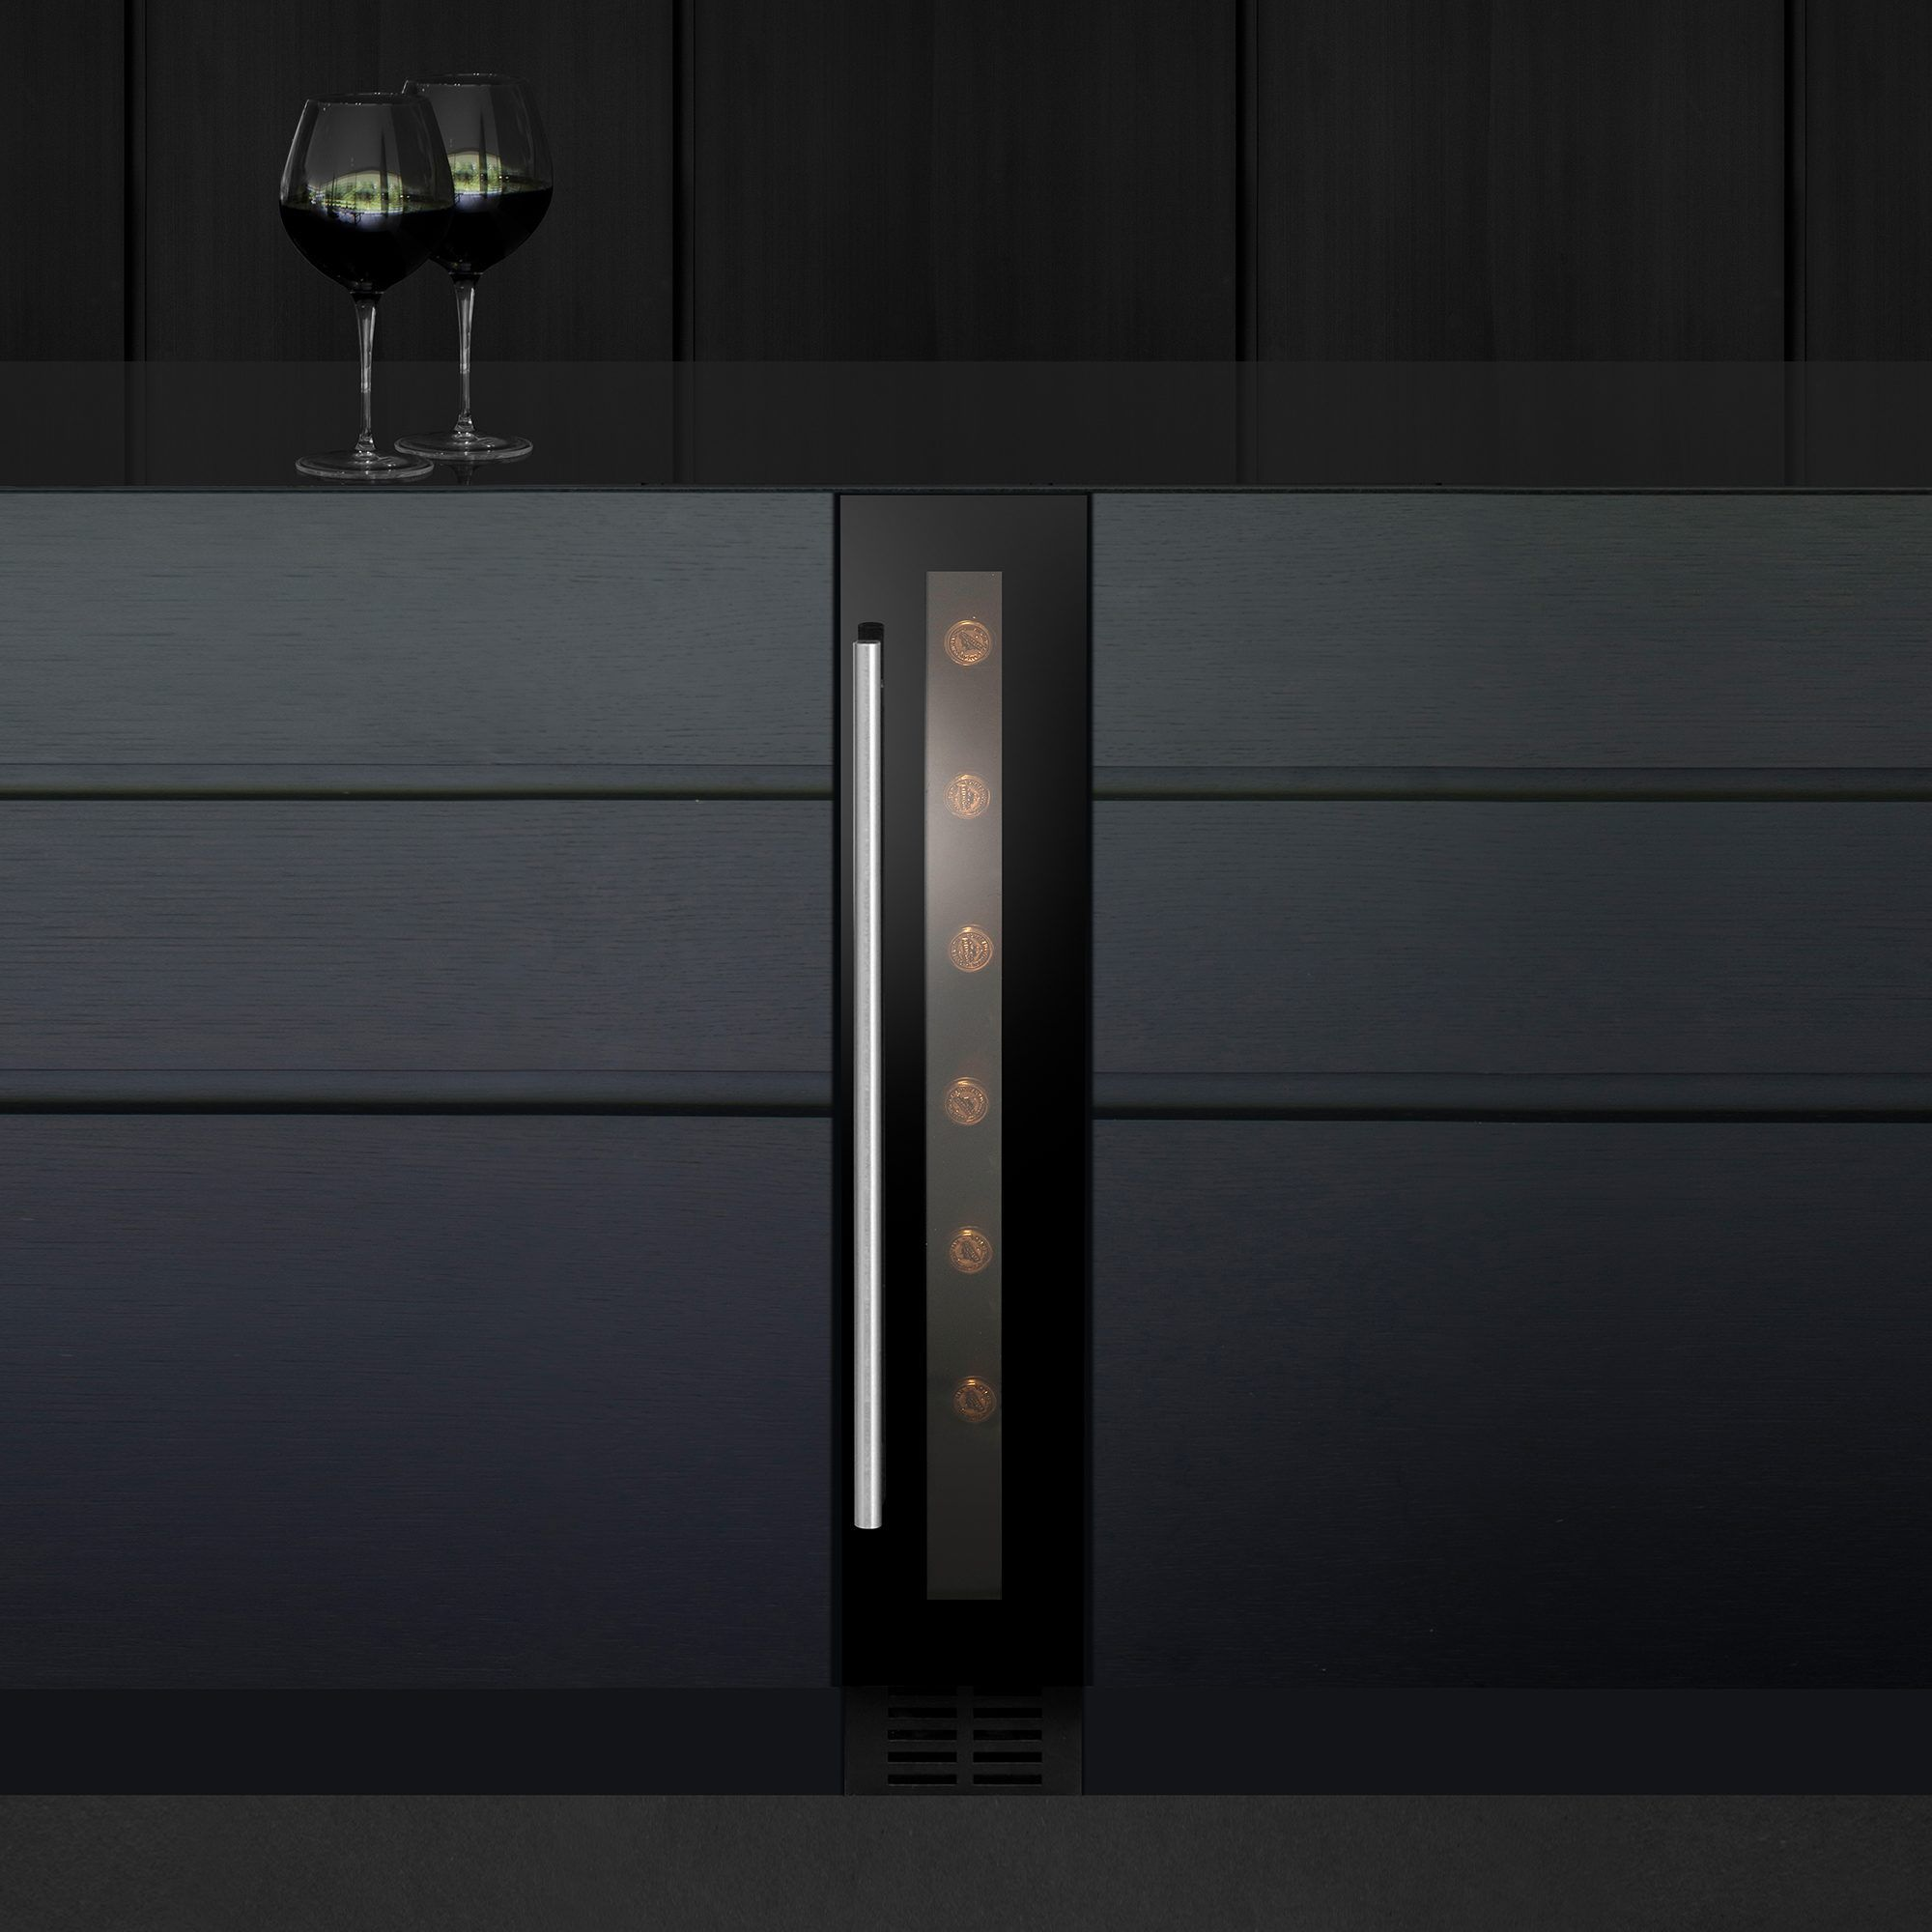 At Only 145mm Wide The Caple Wi154 Slim Line Built Under Wine Coolers Can Store Up To 7 Bottles Of Wine At A Small Wine Cooler Built In Wine Cooler Wine Cooler